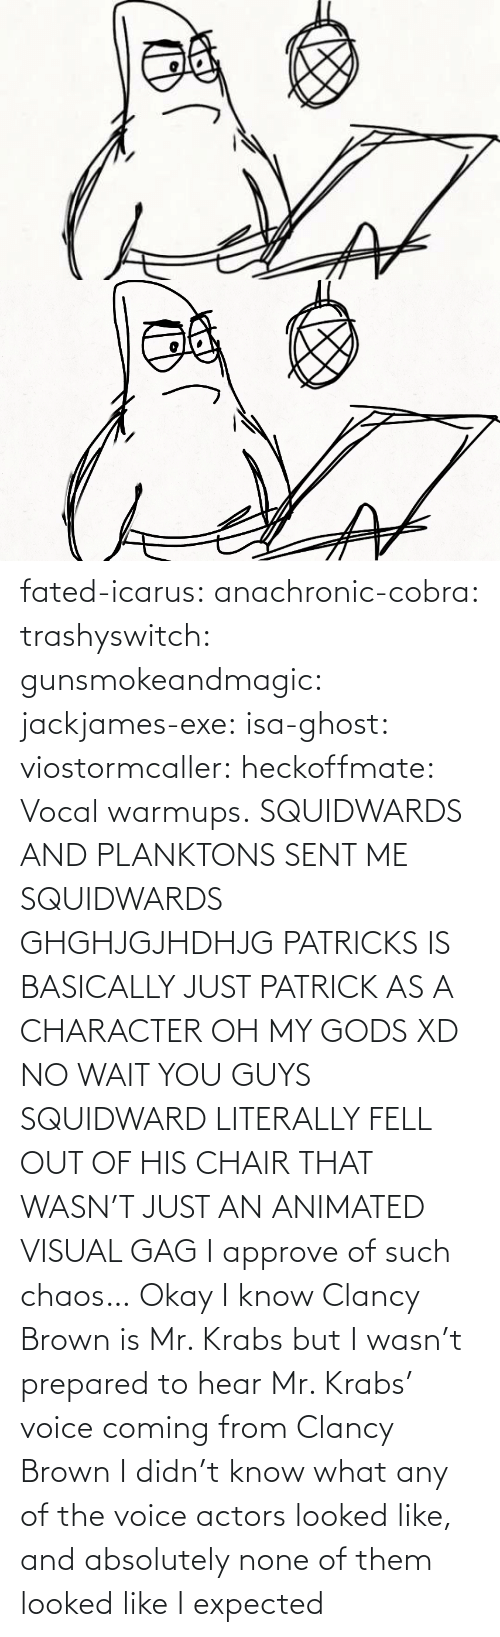 Www Youtube Com: fated-icarus:  anachronic-cobra: trashyswitch:  gunsmokeandmagic:  jackjames-exe:  isa-ghost:   viostormcaller:  heckoffmate: Vocal warmups. SQUIDWARDS AND PLANKTONS SENT ME  SQUIDWARDS GHGHJGJHDHJG   PATRICKS IS BASICALLY JUST PATRICK AS A CHARACTER OH MY GODS XD   NO WAIT YOU GUYS SQUIDWARD LITERALLY FELL OUT OF HIS CHAIR THAT WASN'T JUST AN ANIMATED VISUAL GAG    I approve of such chaos…    Okay I know Clancy Brown is Mr. Krabs but I wasn't prepared to hear Mr. Krabs' voice coming from Clancy Brown    I didn't know what any of the voice actors looked like, and absolutely none of them looked like I expected